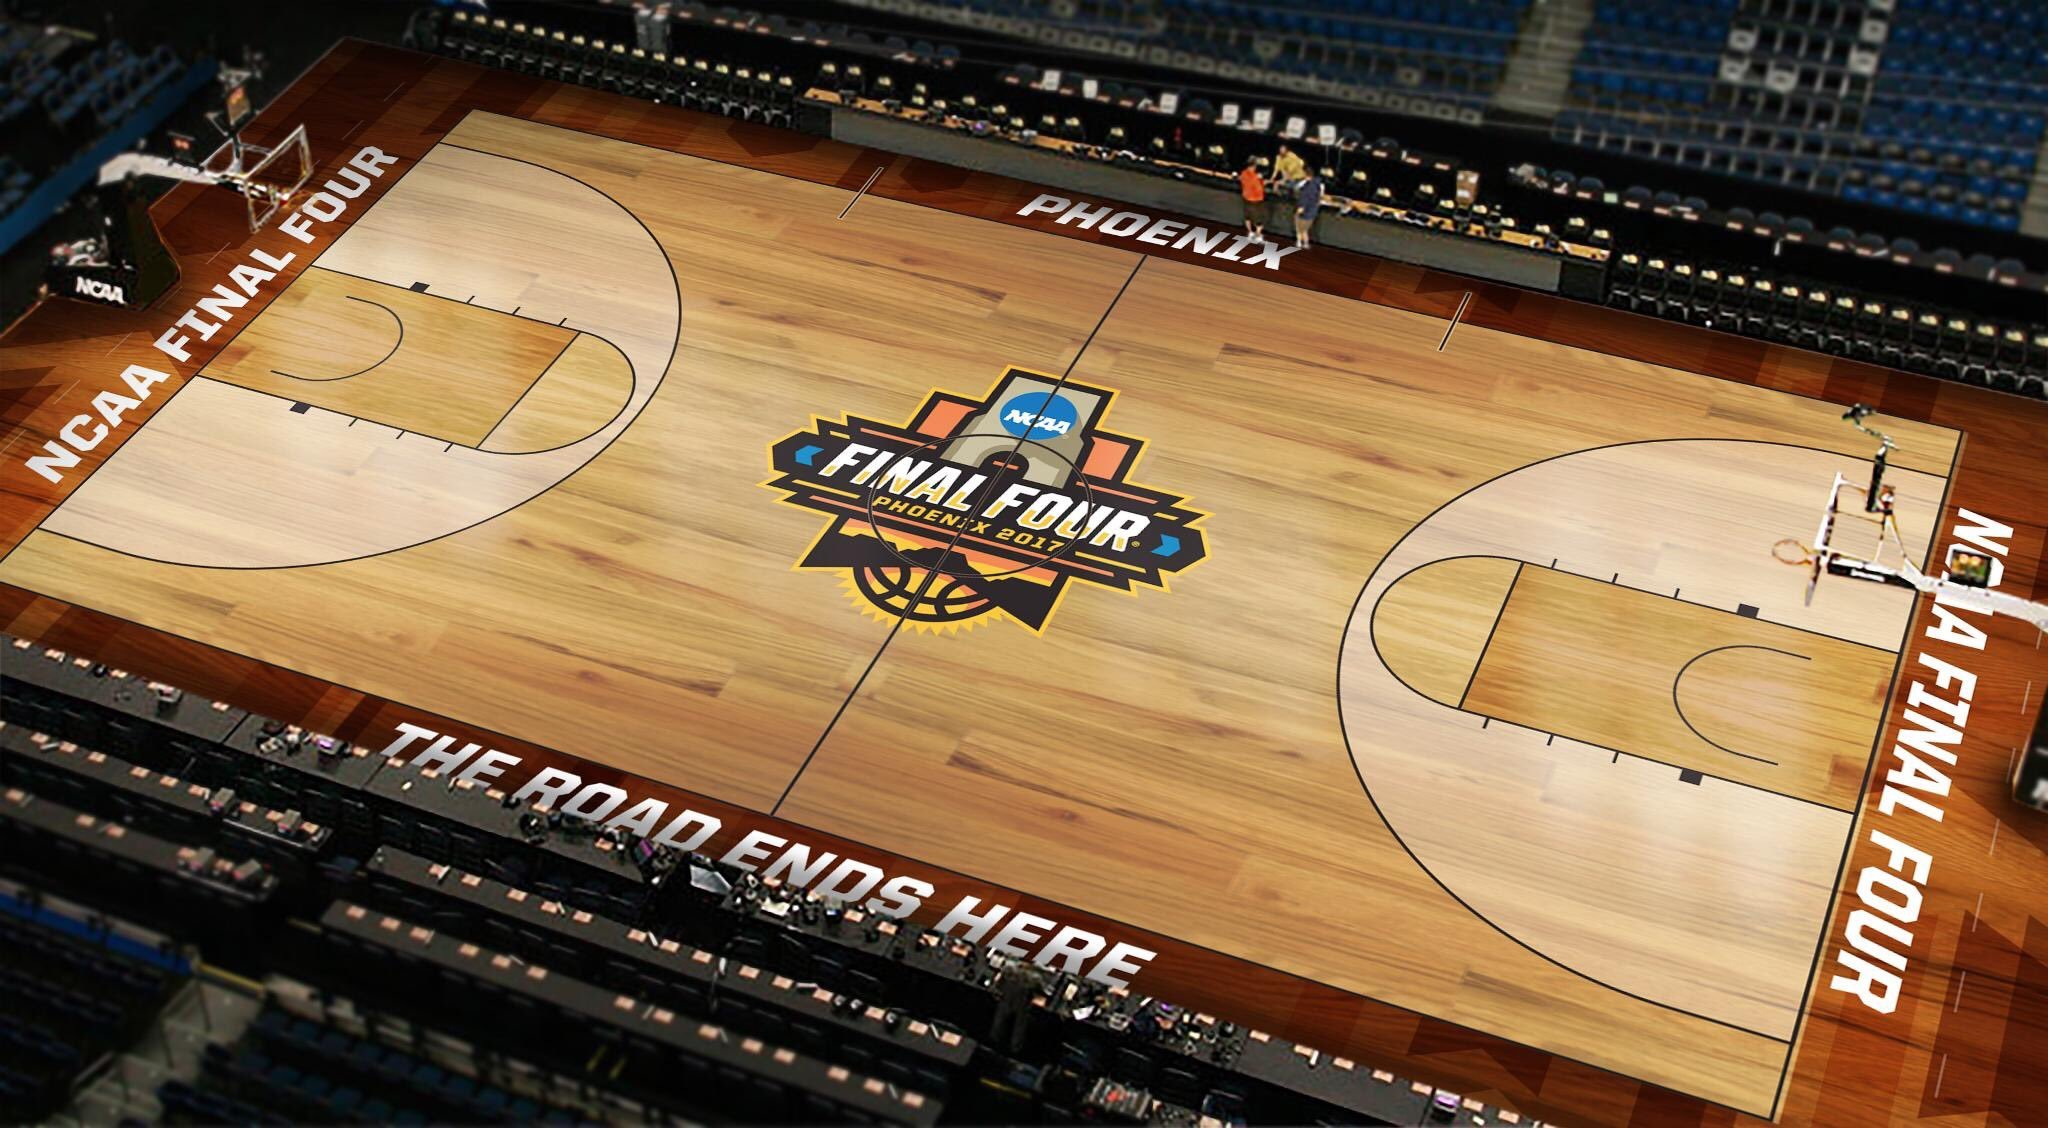 (Source: @FinalFour via Twitter)